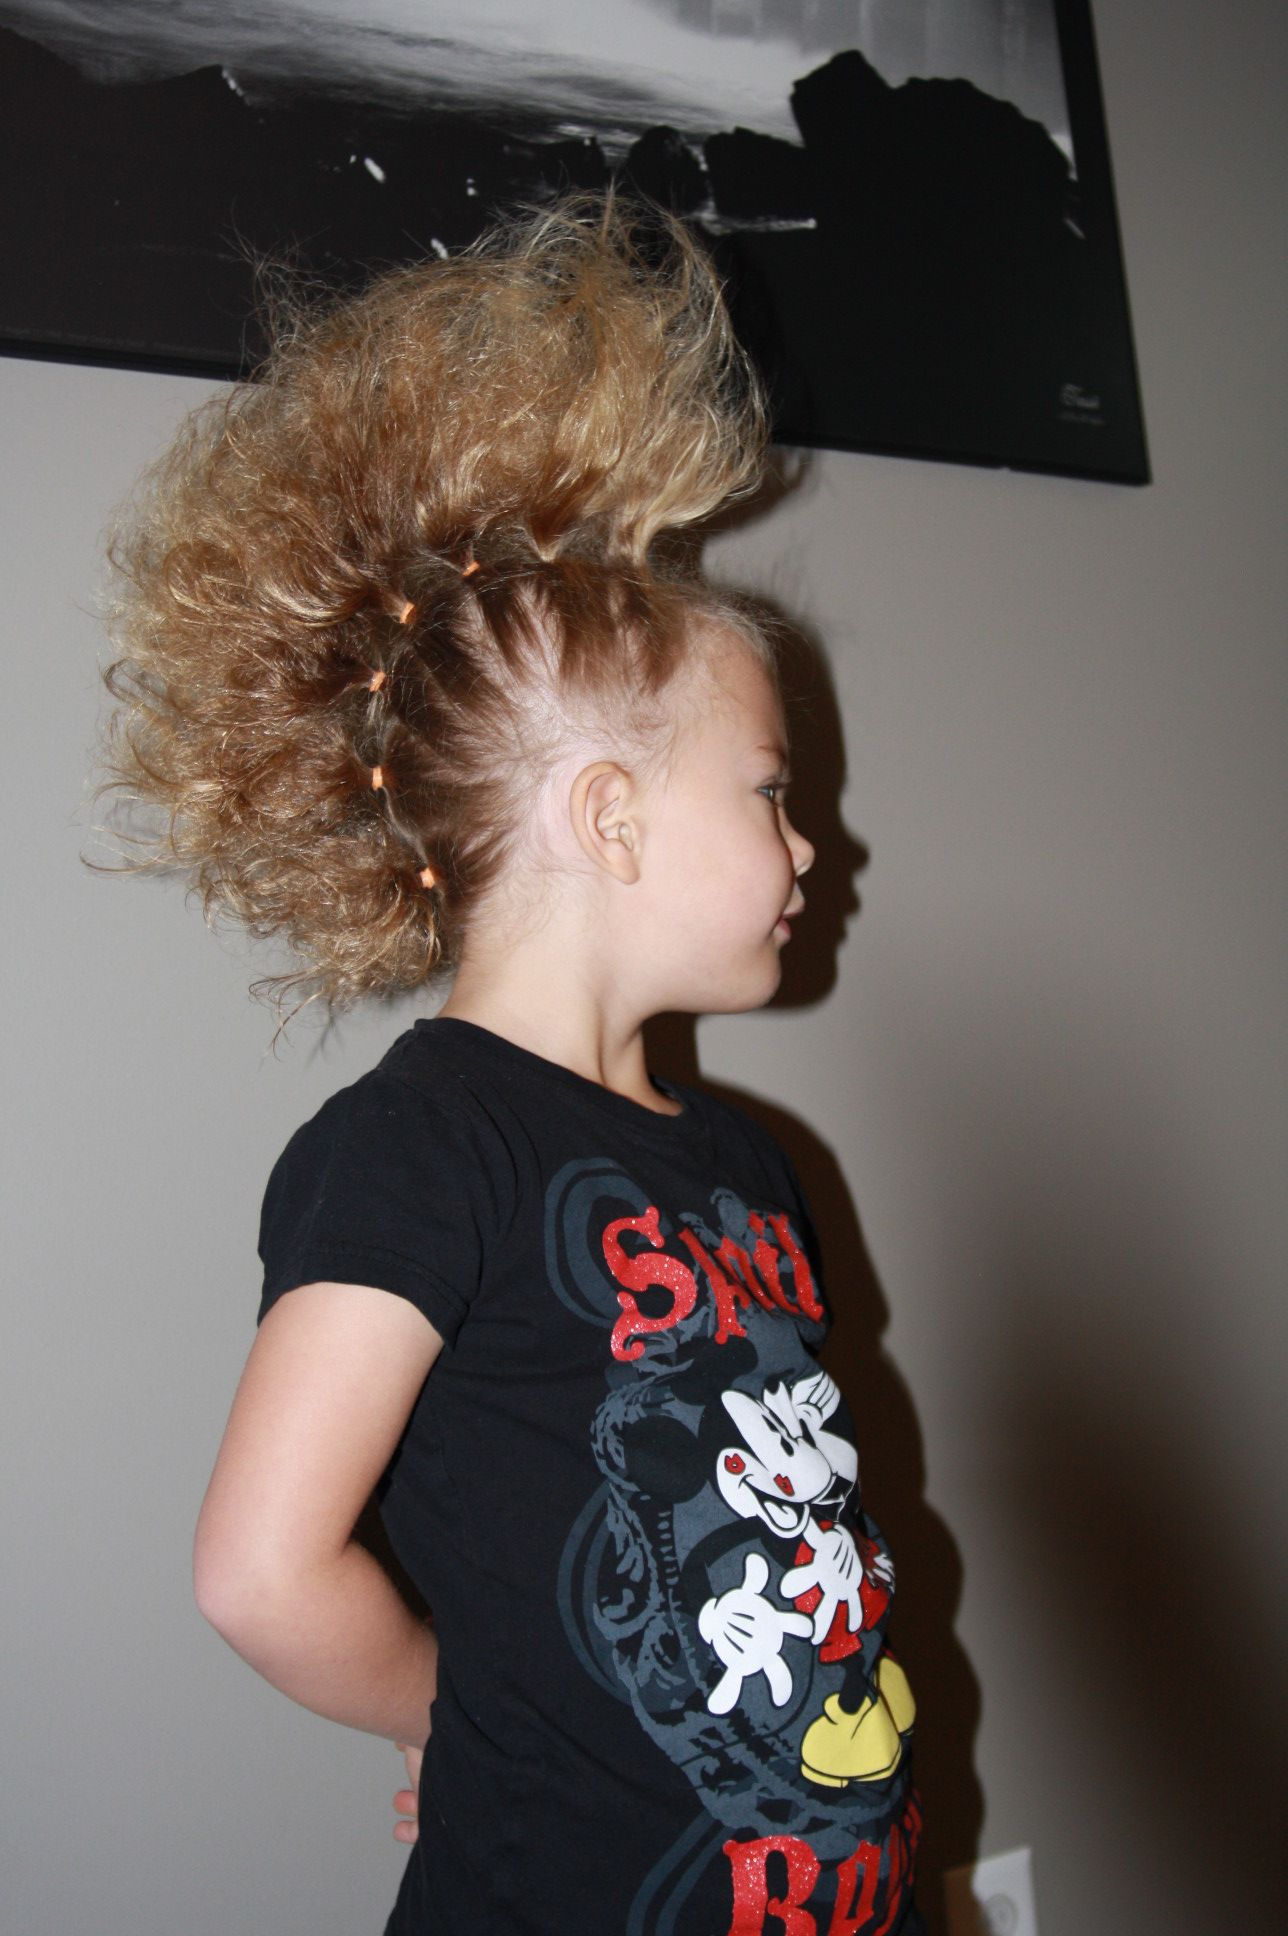 it's crazy hair day! | hair | pinterest | crazy hair, hair style